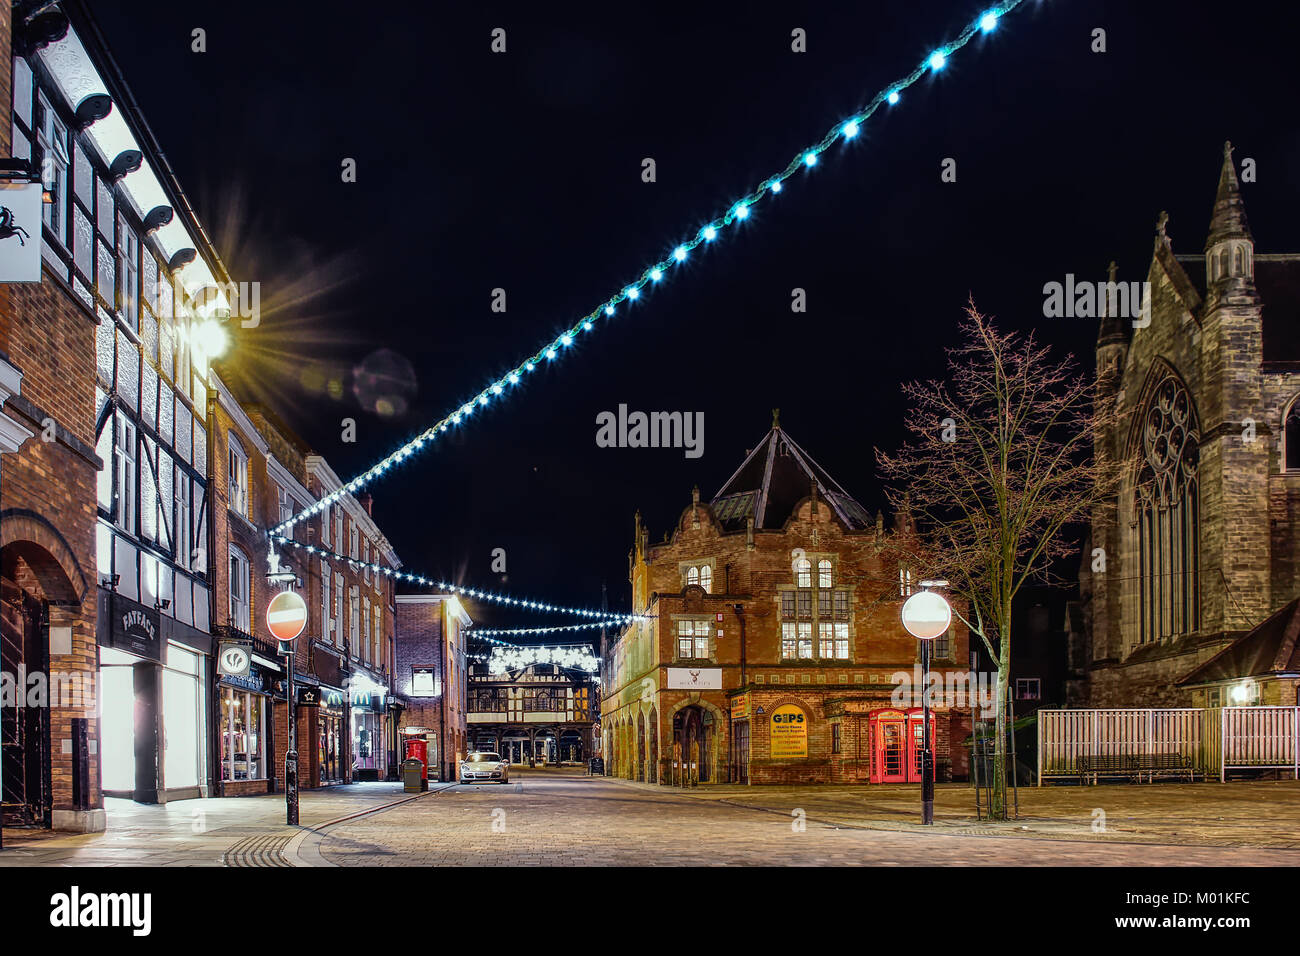 Lichfield Town Center At Night With Christmas Lights Switched  On,Lichfield,Staffordshire,United Kingdom,03 December,2017.